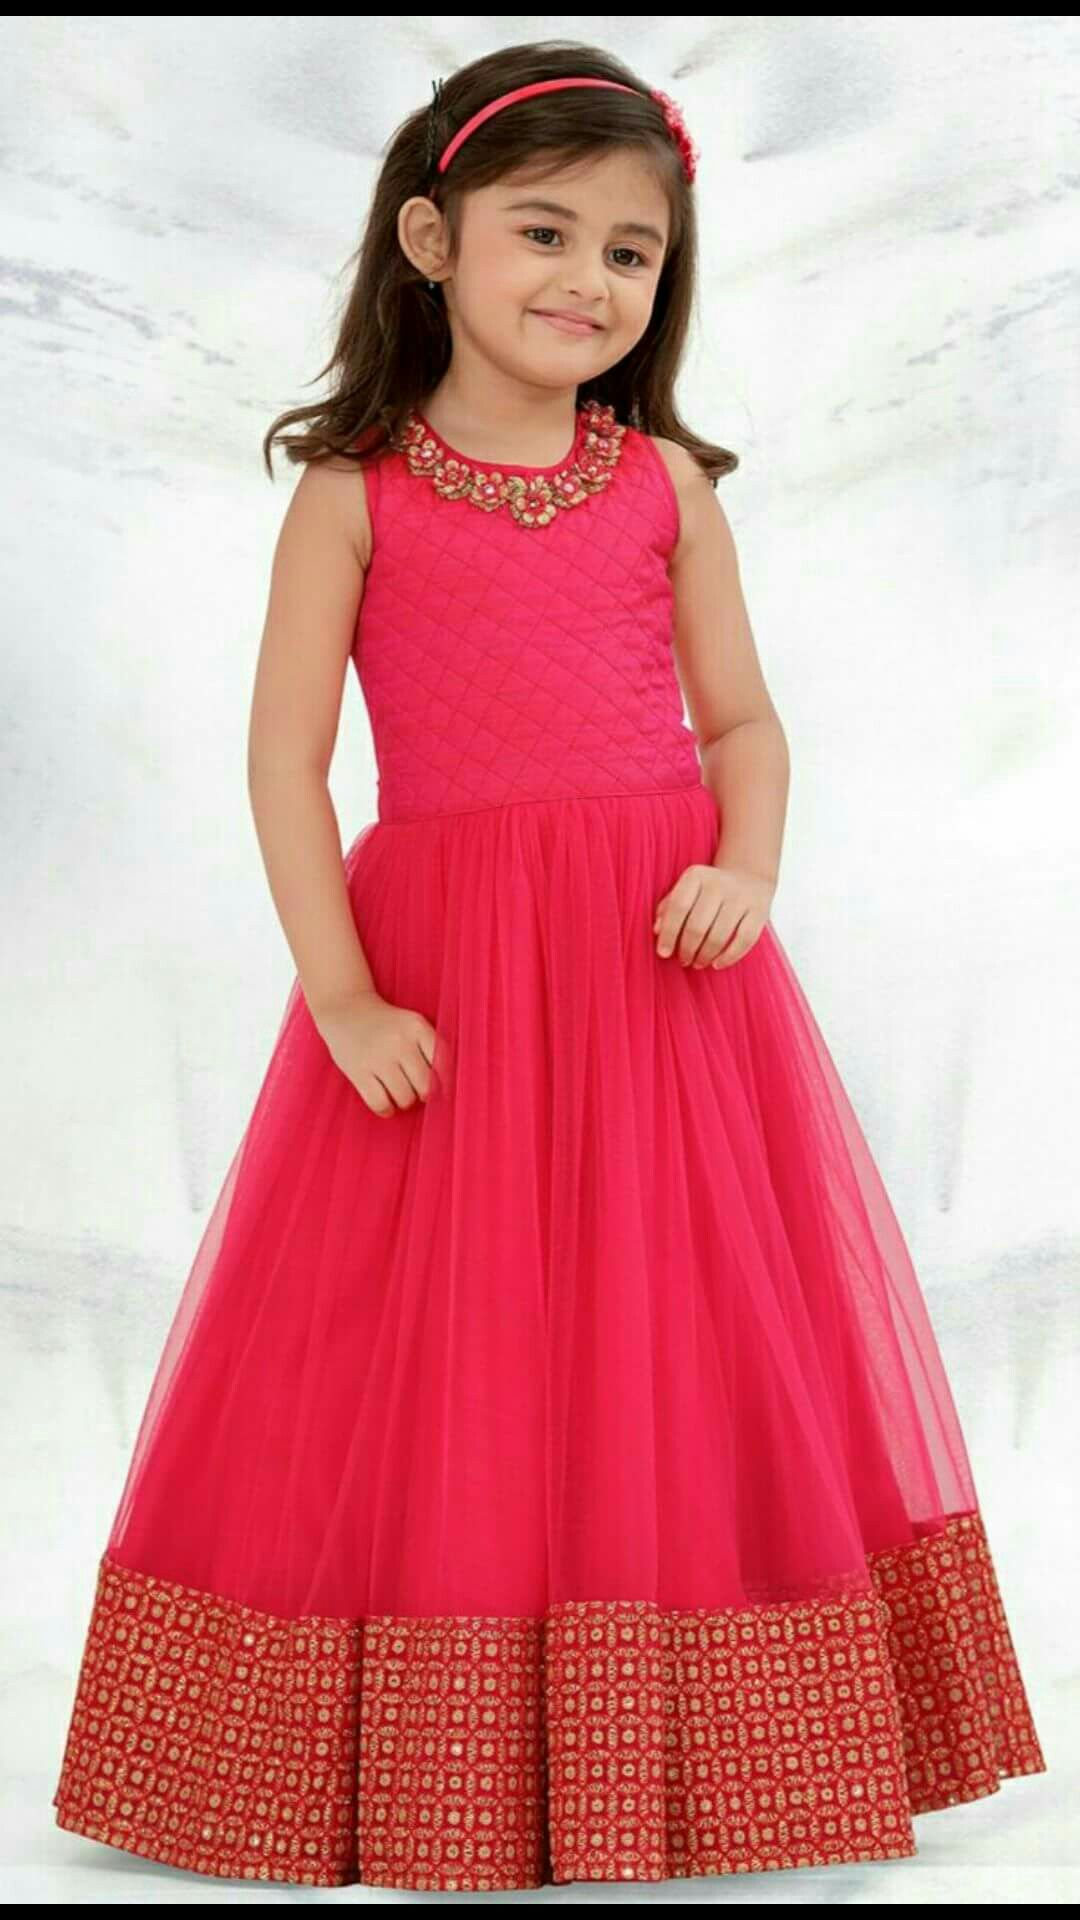 7b54a8ef4c55e Frocks | frocks in 2019 | Kids party wear dresses, Kids frocks ...